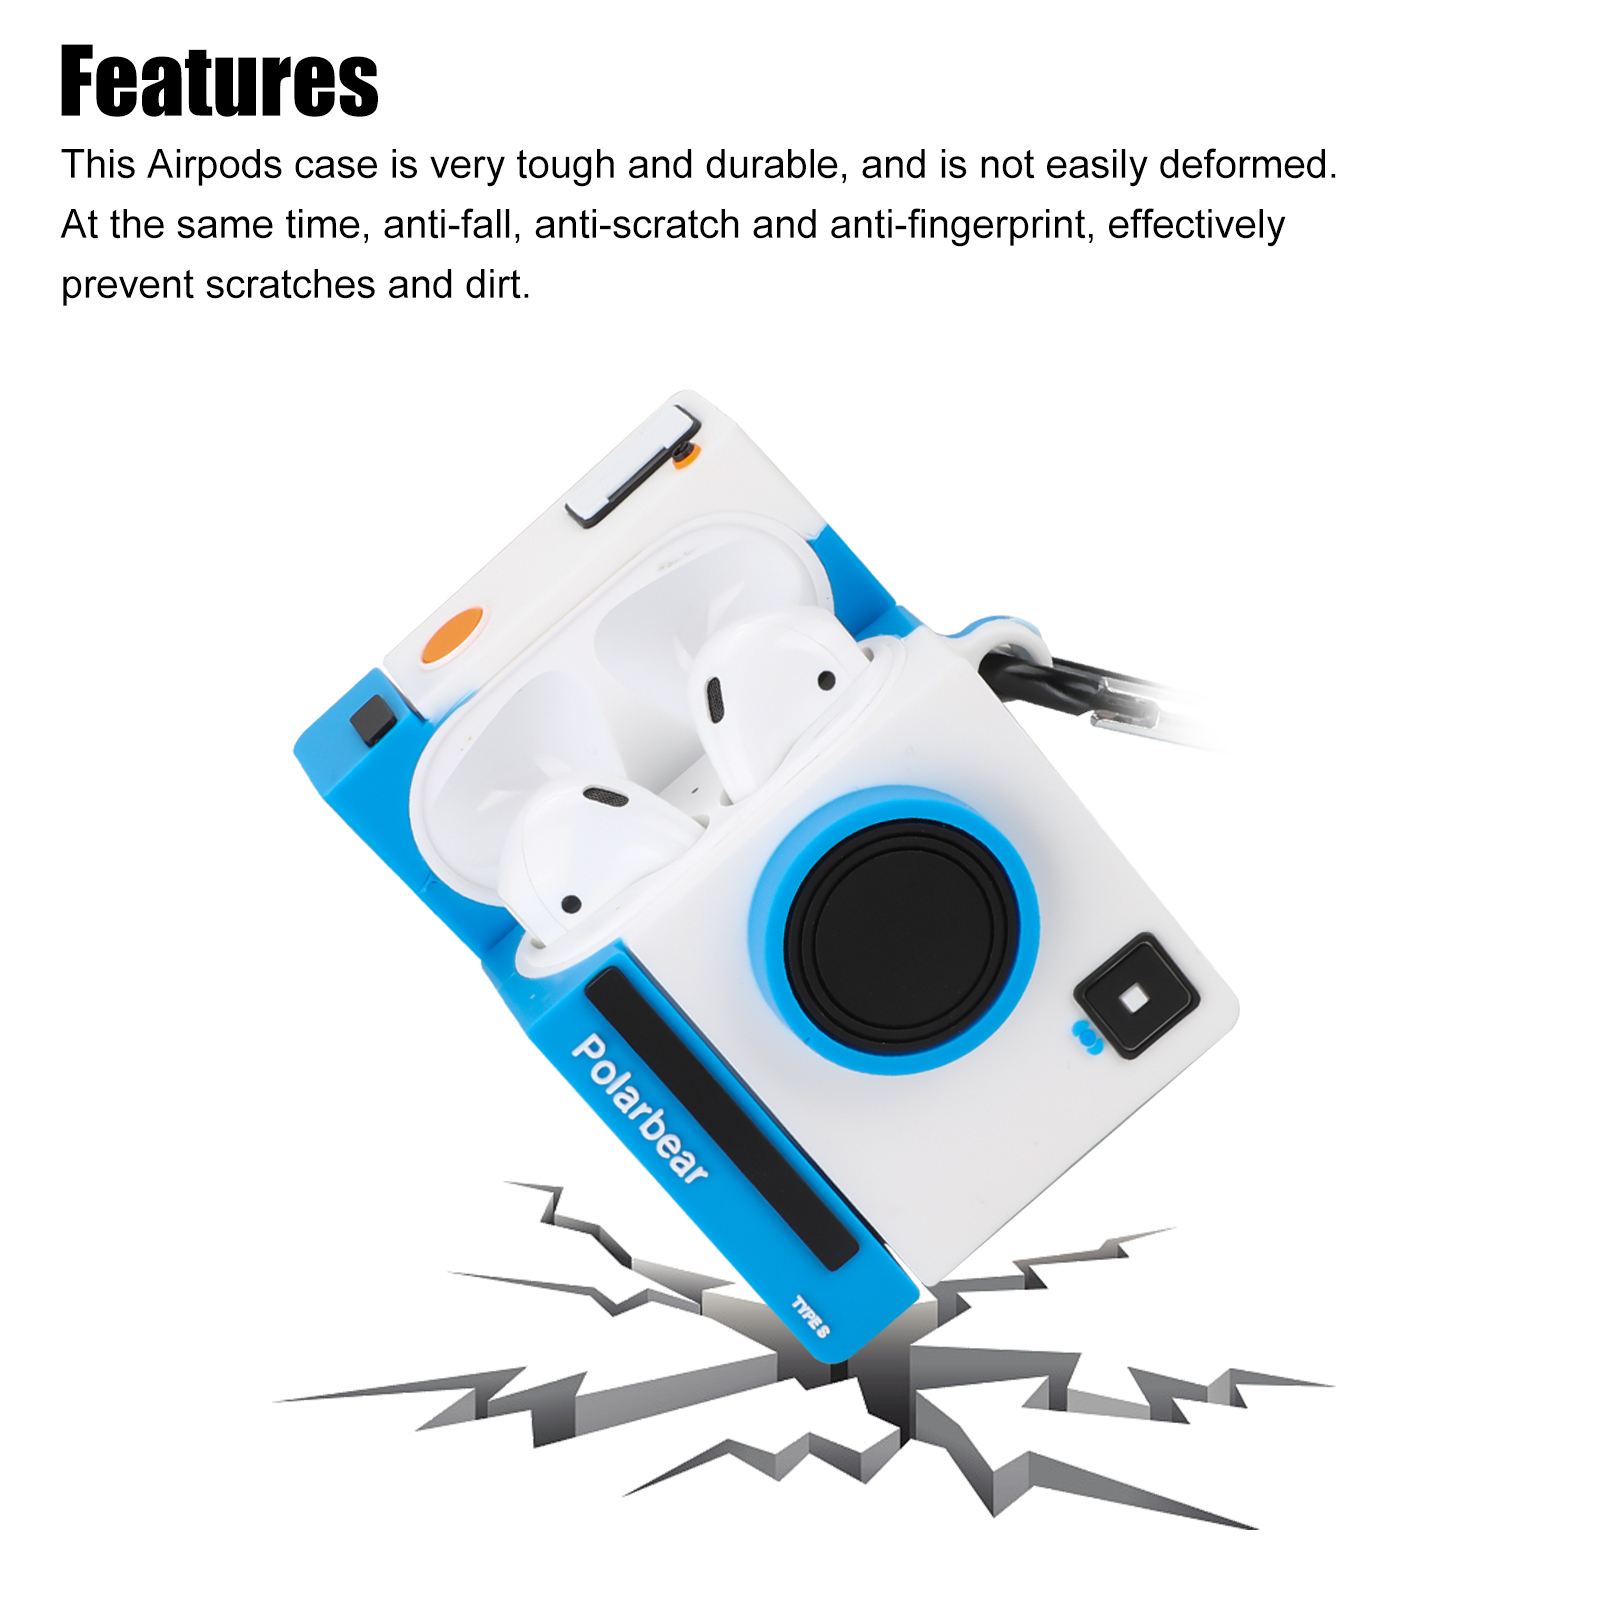 Compatible with Airpods Case Cover, Cute 3D Cartoon Silicone Airpods Protective Skin Case